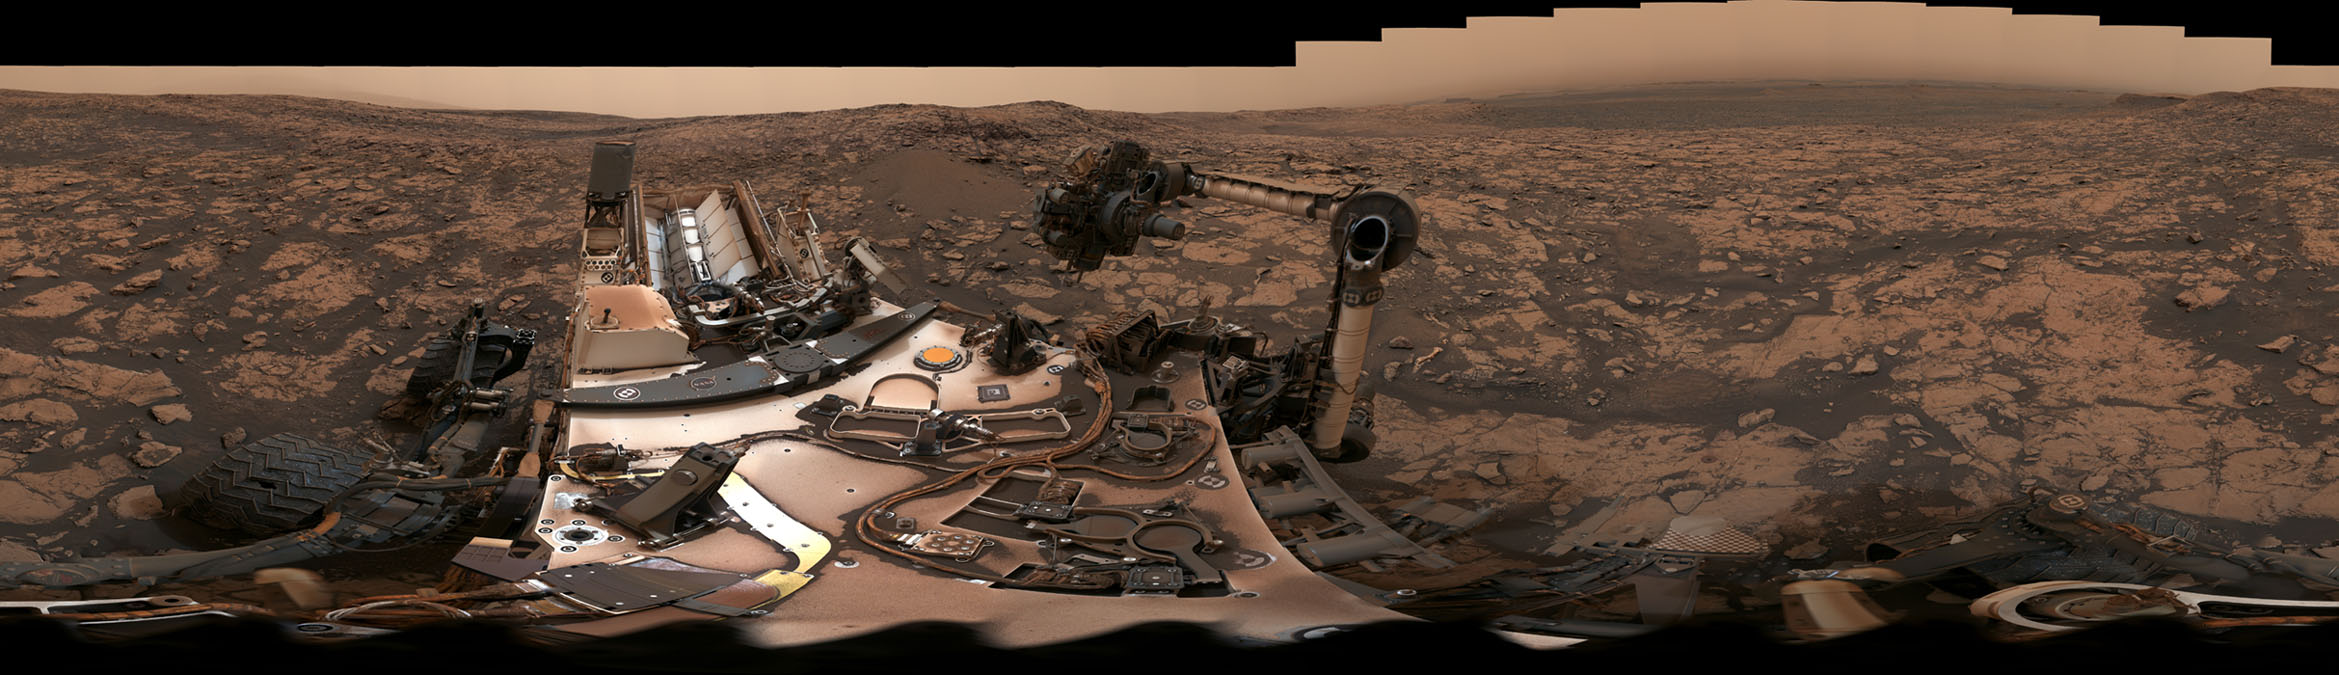 NASA's Curiosity rover surveyed its surroundings on Aug. 9, 2018, showing its current location on Mars' Vera Rubin Ridge. The panorama includes skies darkened by a fading global dust storm and a rare view of the rover itself.